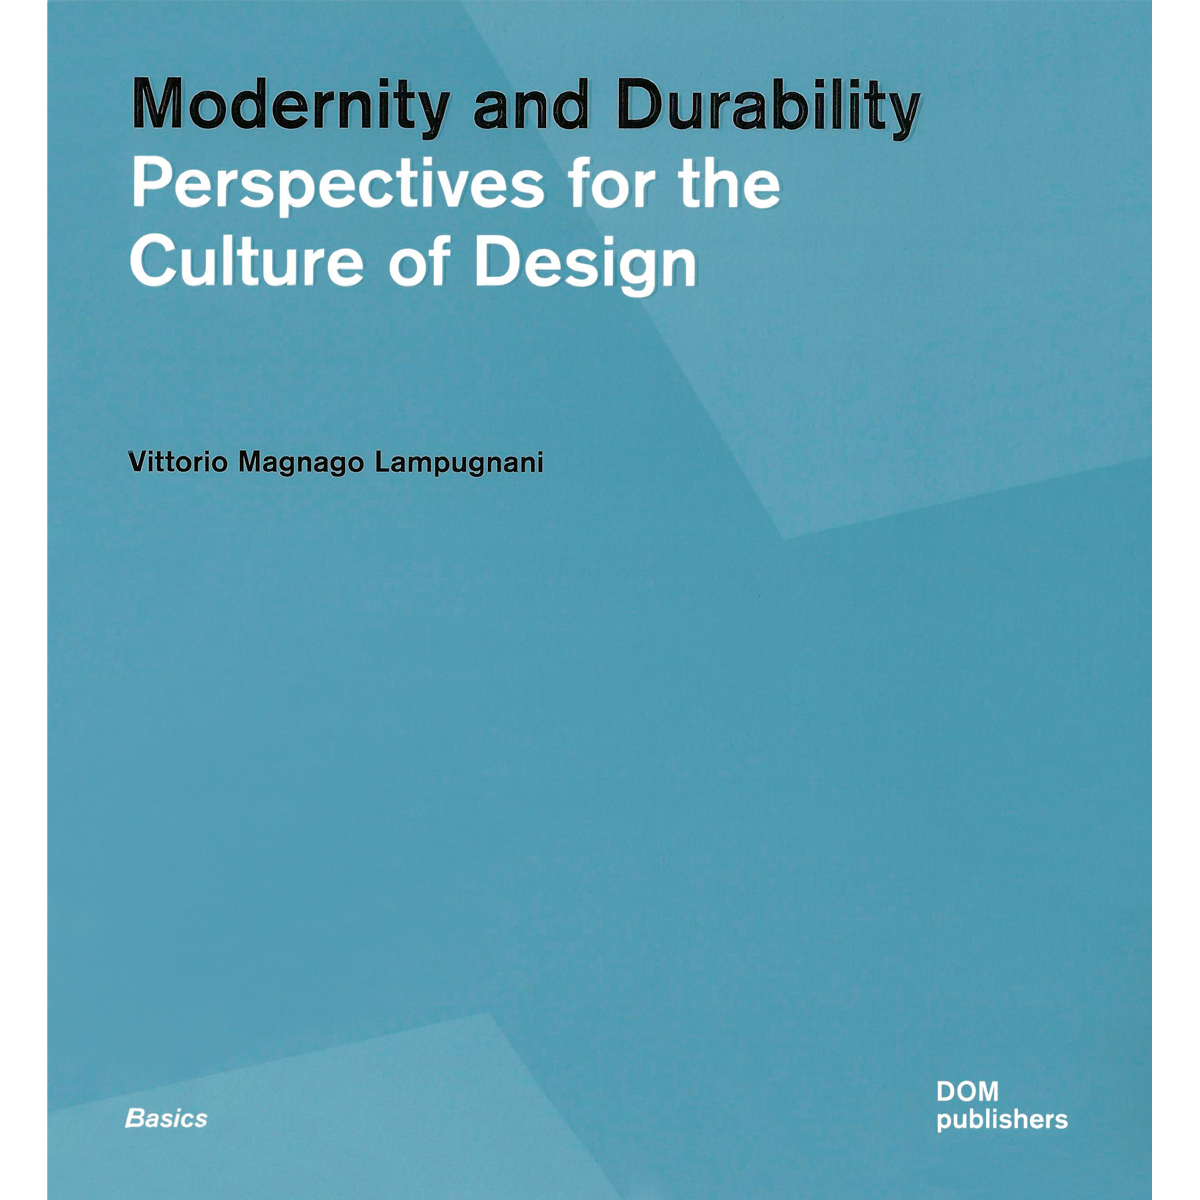 Modernity and Durability